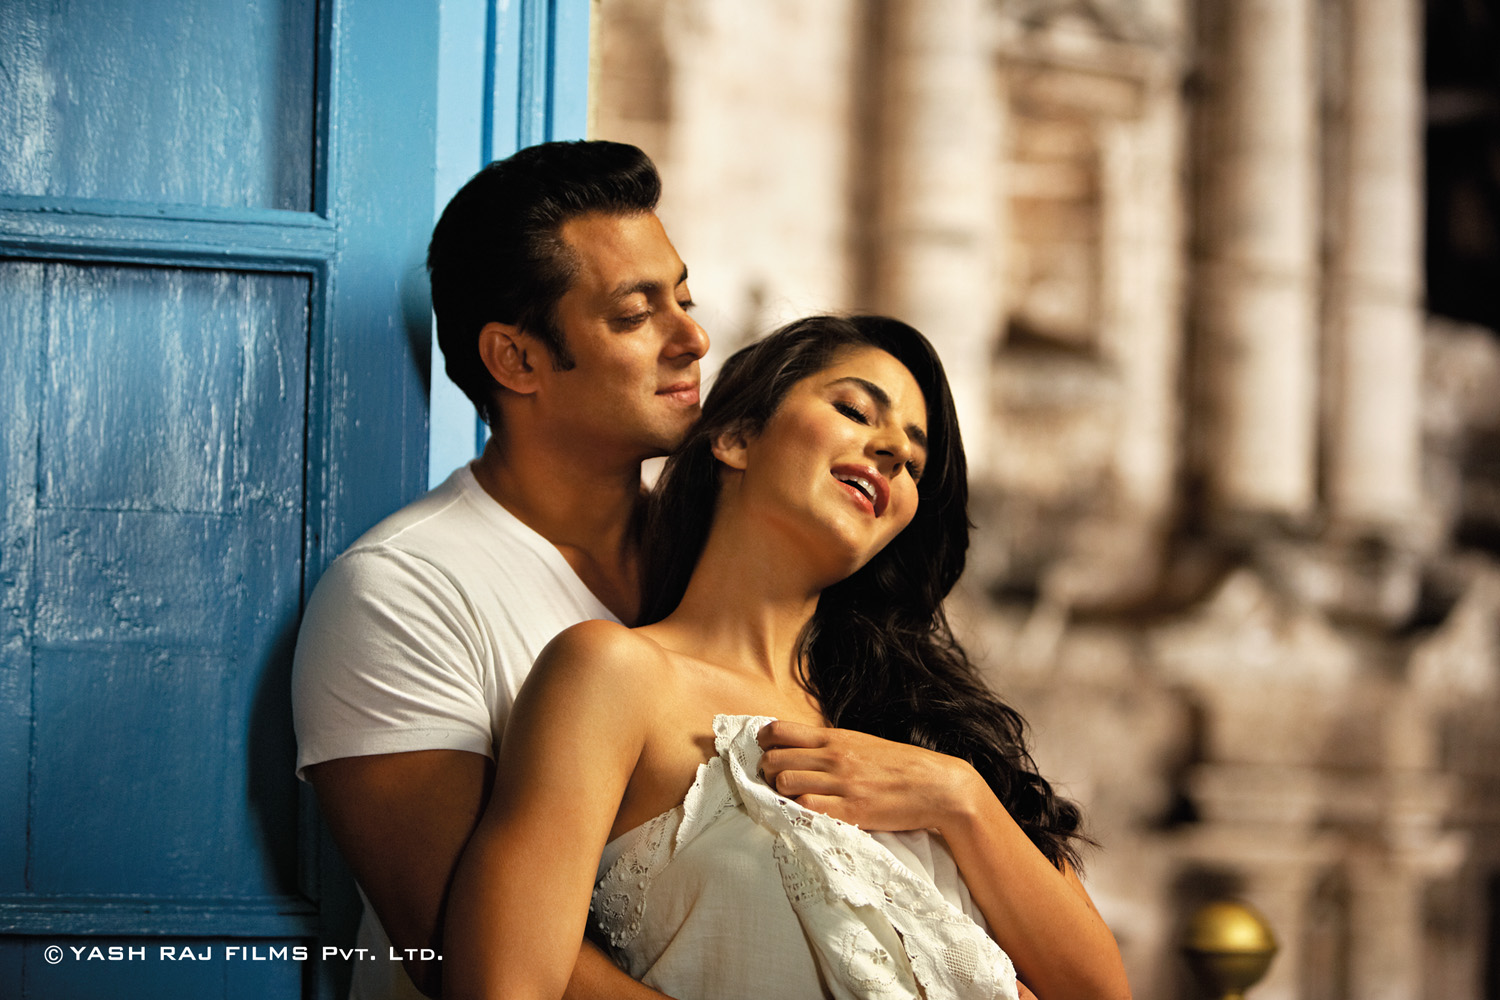 Salman-Khan-and-Katrina-Kaif-Ek-Tha-Tiger-wallpaper-wp44011067